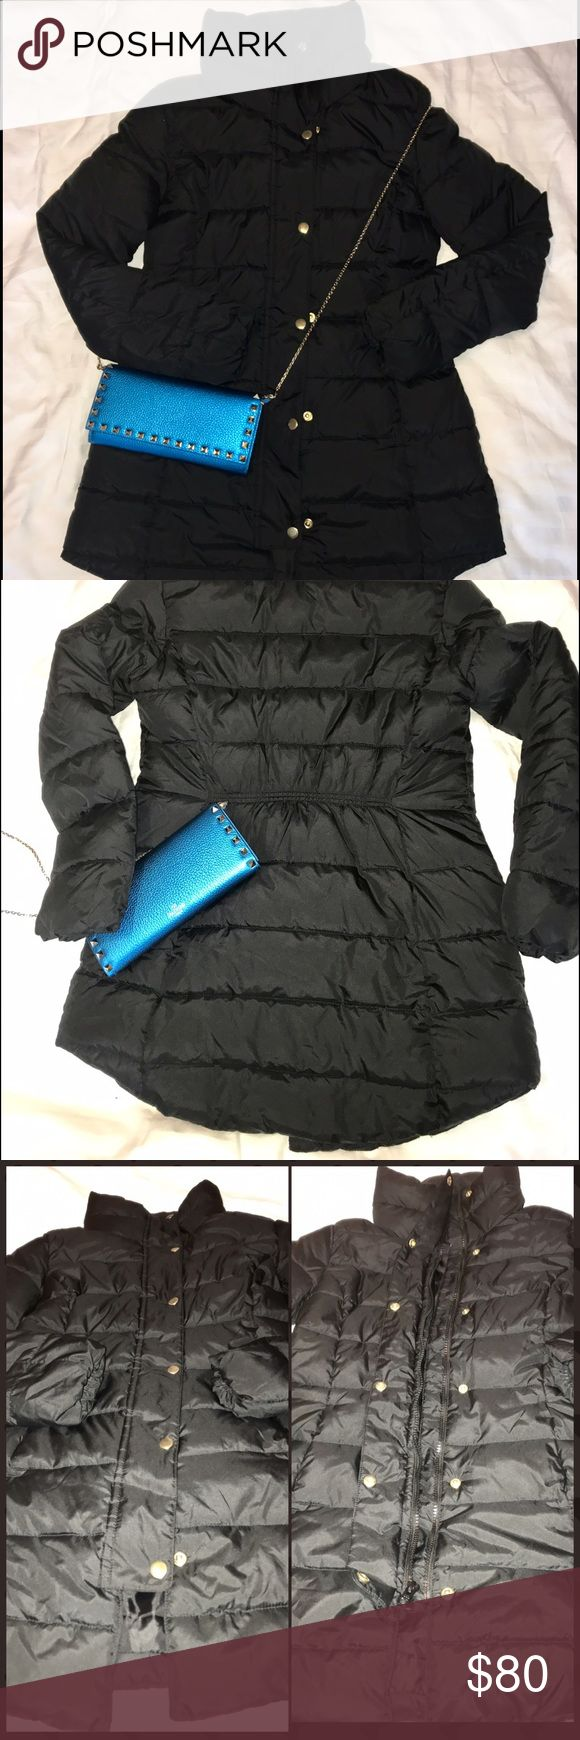 SALE Preowned Gap Down Long Puffer Jacket XS Black This is Preowned long jacket from Gap Xs. Used this about 5 times , it was a xmas gift 🎁 last year. In great condition, no holes or rip. I sew the end of the Jacket to looks shorter but it doesn't looks right so I took it off. But other than that it is in great condition. 29 inches from shoulder to end. 15 Shoulder , armpit 18 inches.. pls see additional photo in another listing. Valentino wallet  on chain not included. GAP Jackets & Coats…